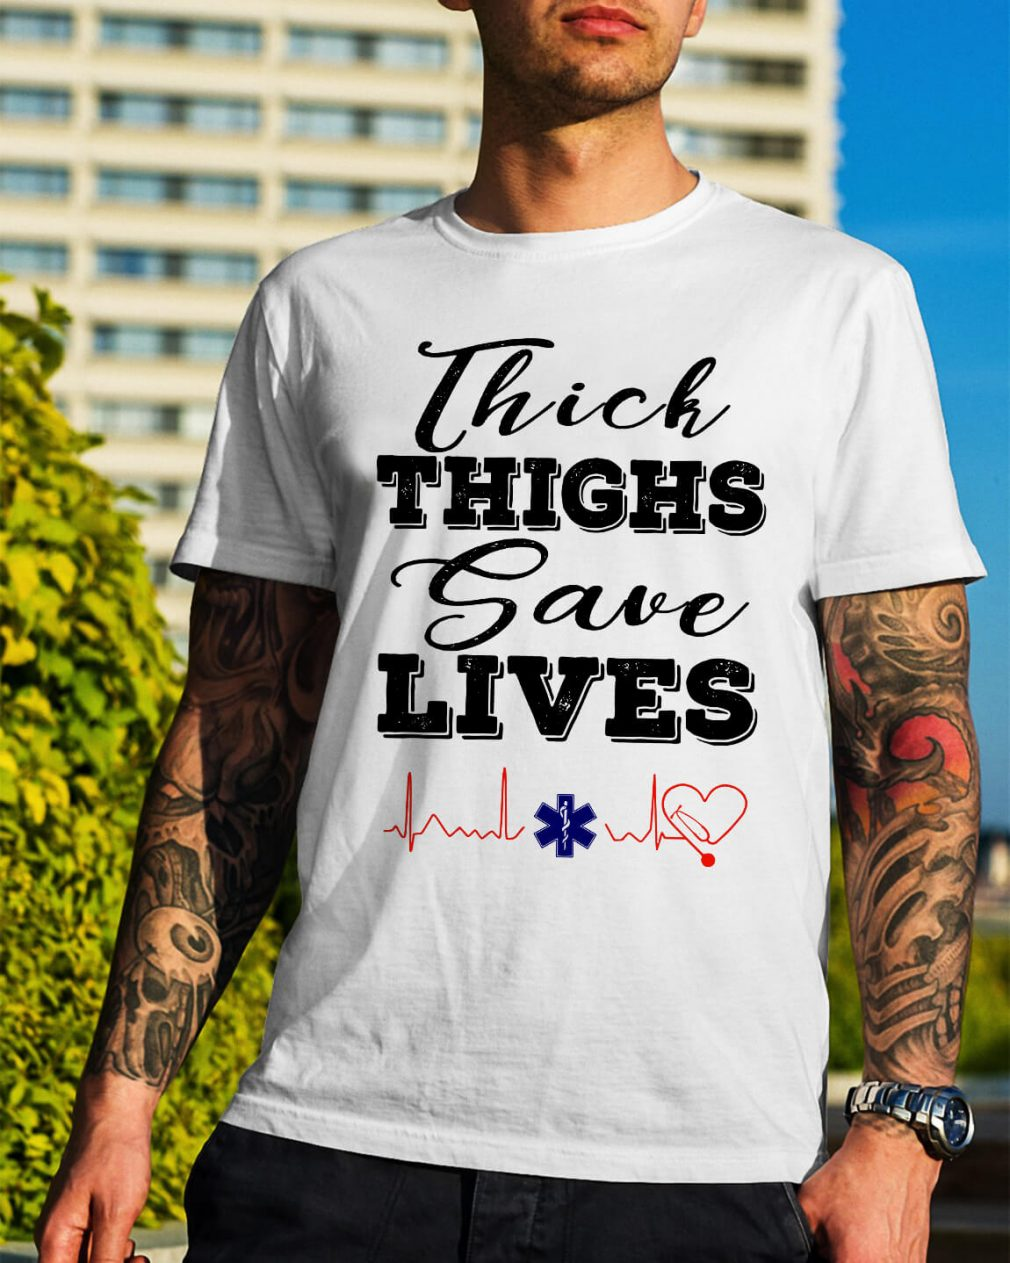 Thich thighs save lives shirt